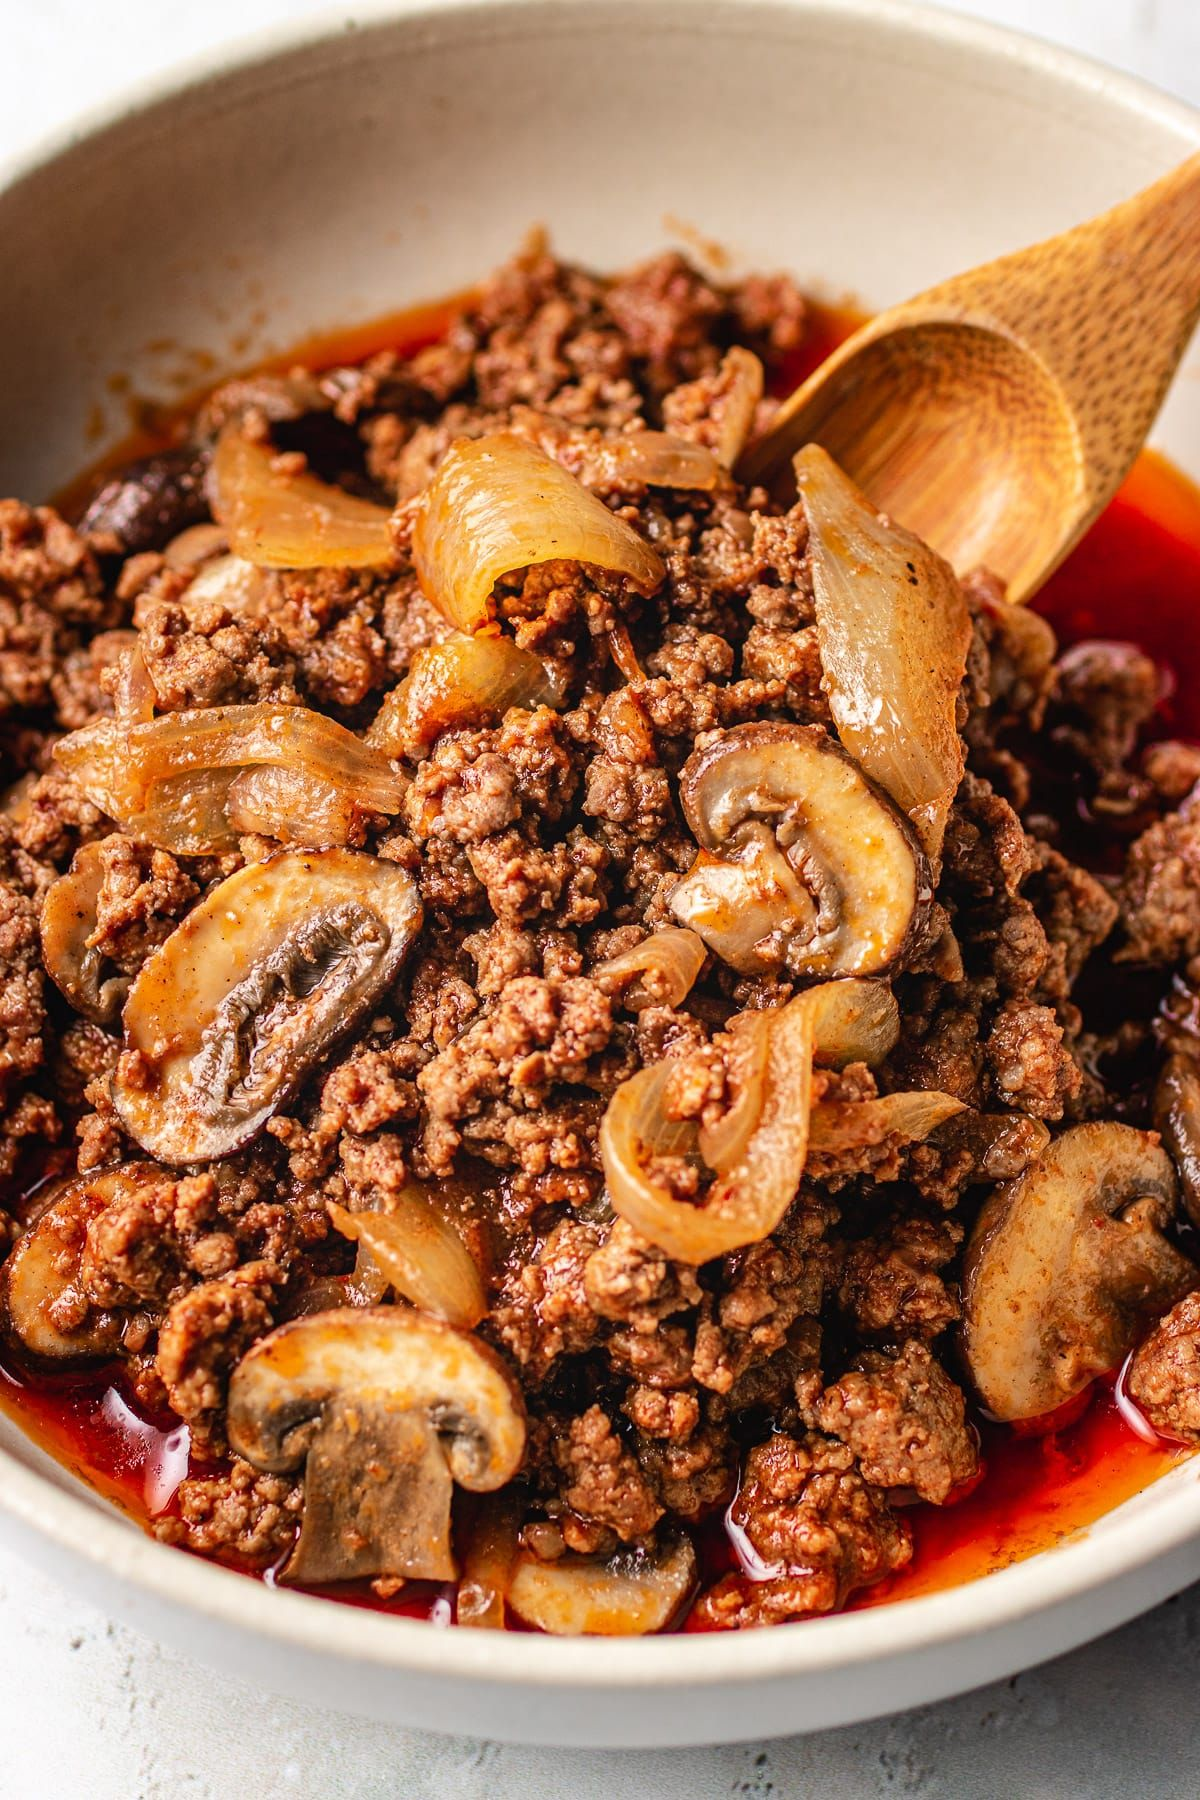 Easy Ground Beef Meal Prep Recipe Paleo Whole30 Recipe In 2020 Beef With Mushroom Beef Recipes Ground Beef